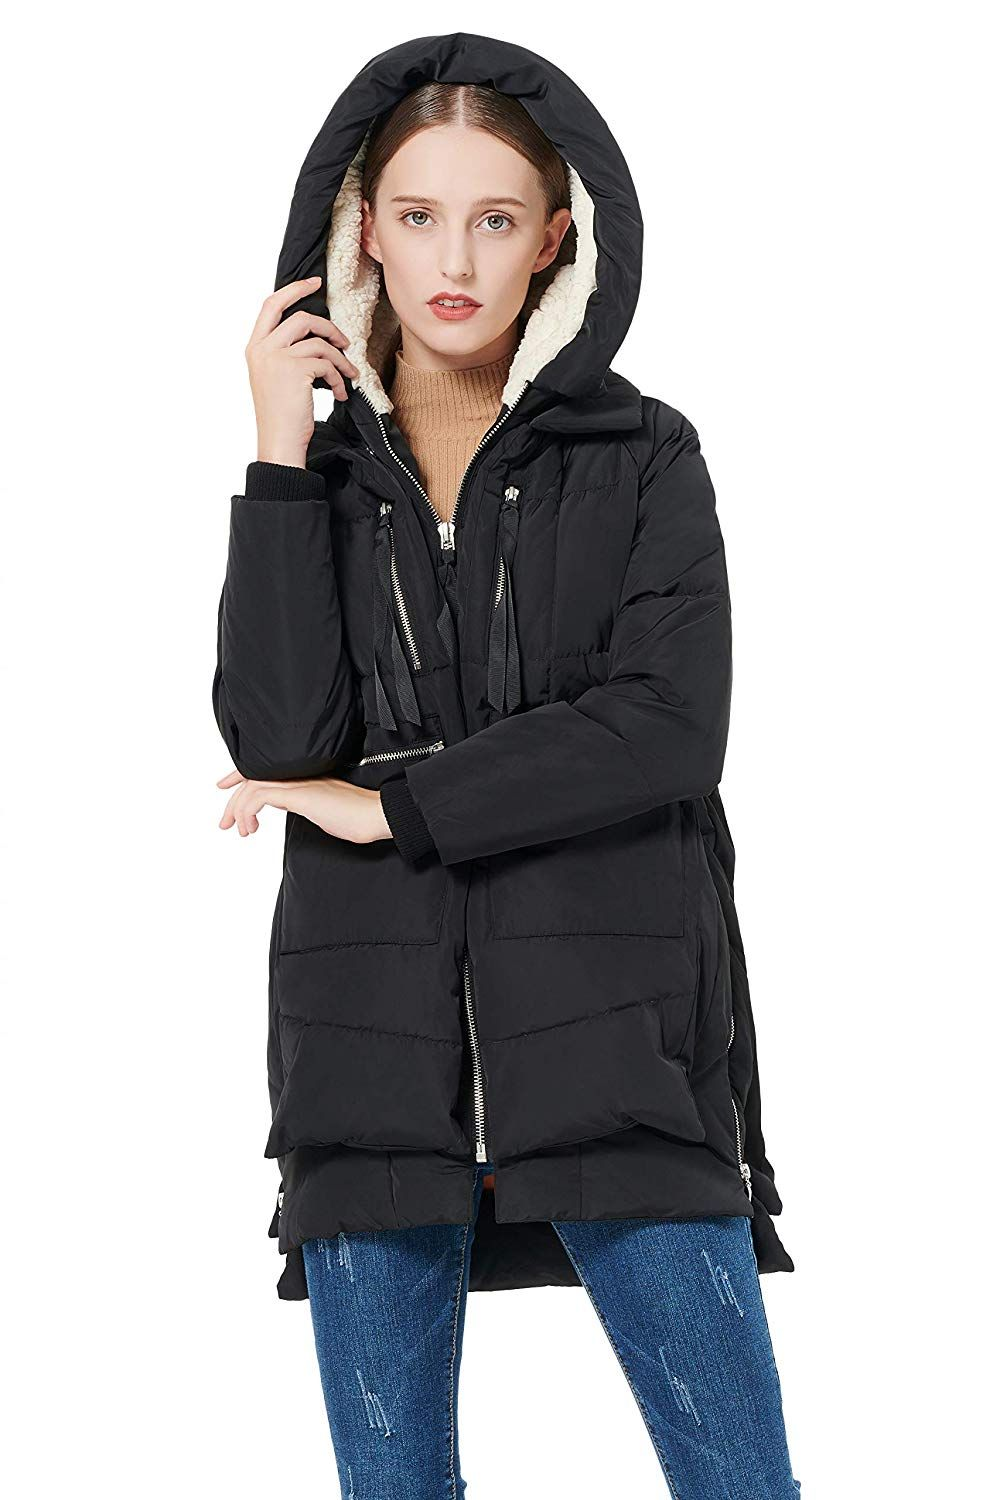 9031de00257b Amazon.com  Orolay Women s Thickened Down Jacket (Most Wished  Gift Ideas)   Clothing